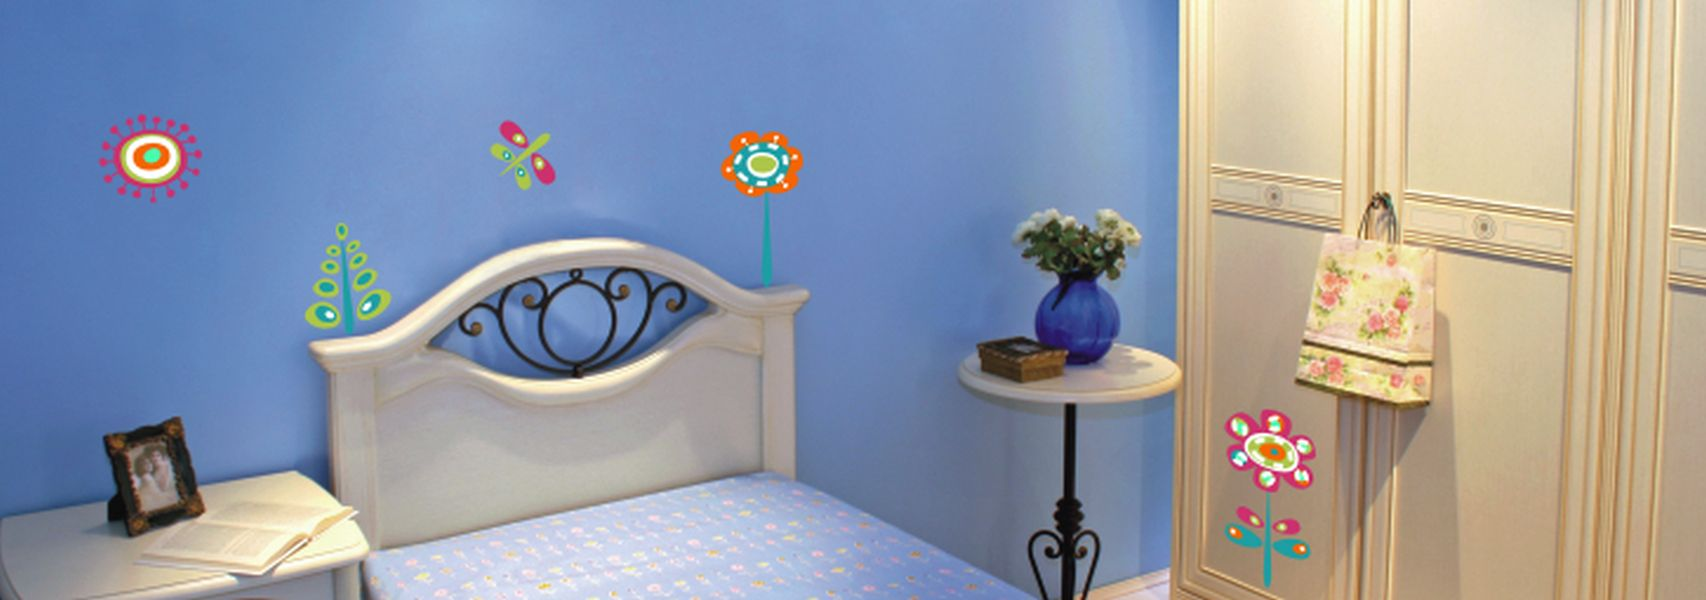 Decorative Sticker Spring Day Primacol Decorative